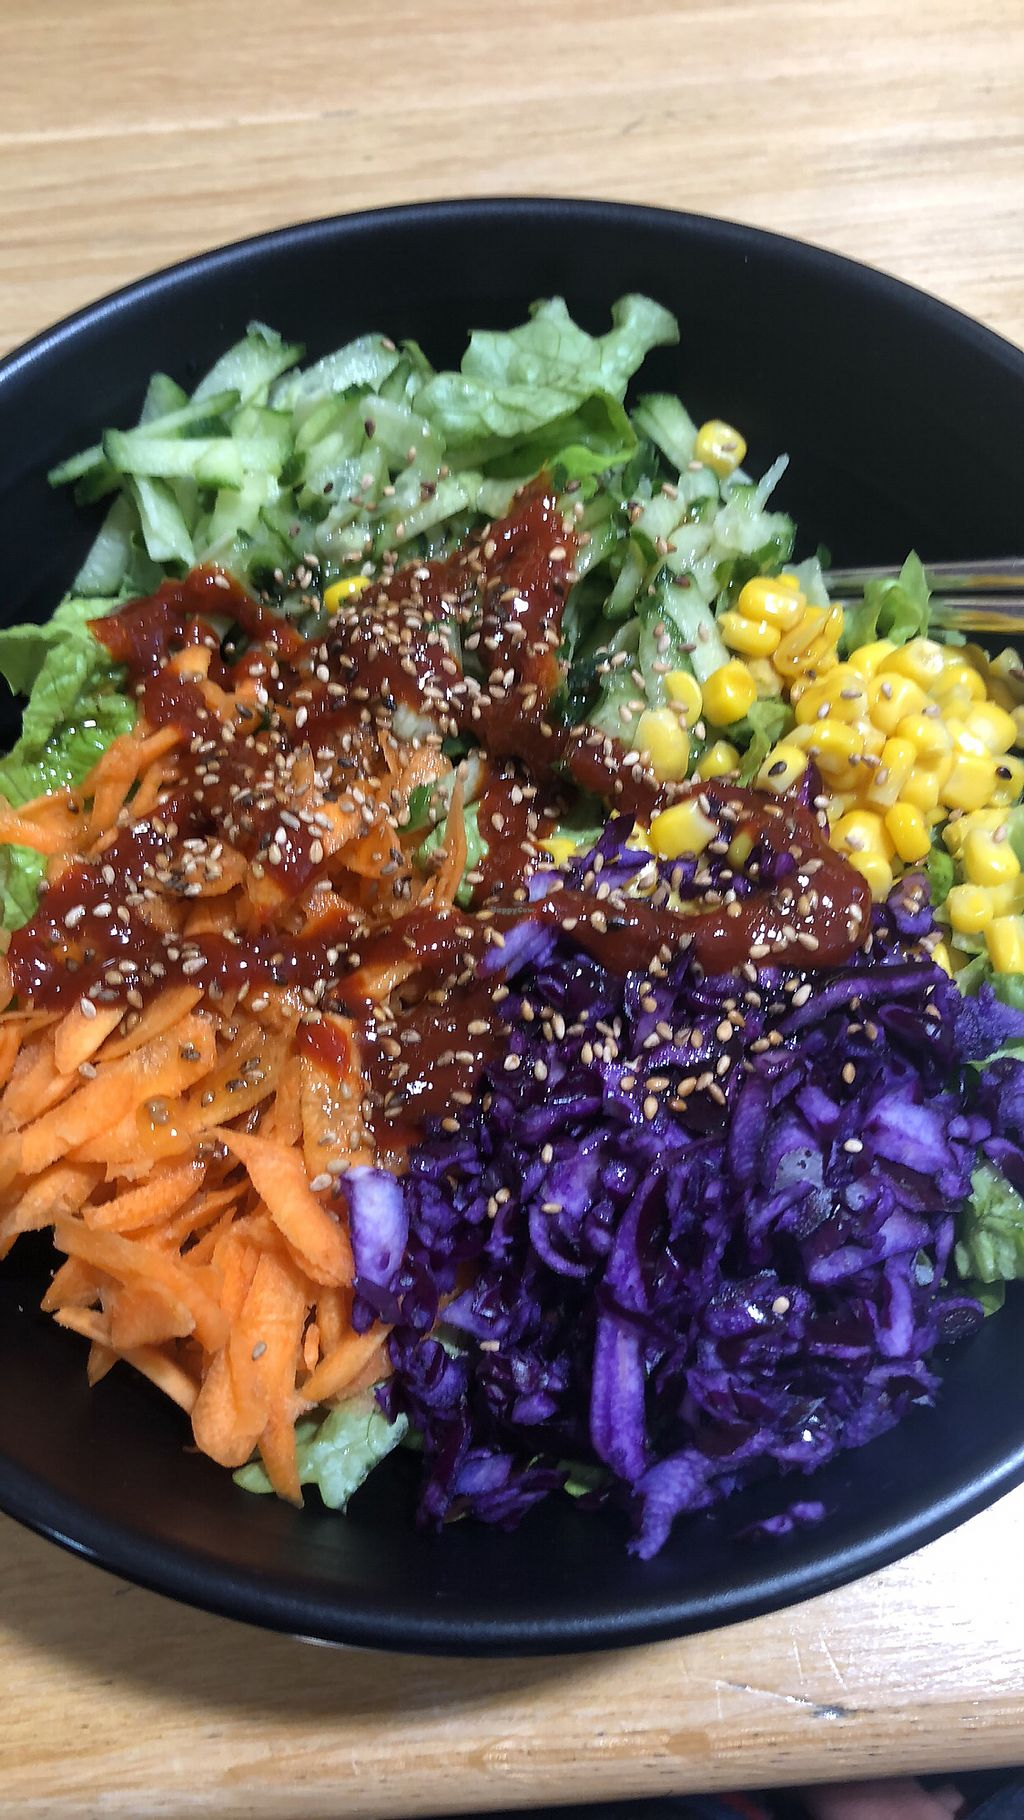 """Photo of Omija  by <a href=""""/members/profile/Jaelle"""">Jaelle</a> <br/>Vegetalien (vegan) bibimbap <br/> March 13, 2018  - <a href='/contact/abuse/image/95034/370324'>Report</a>"""